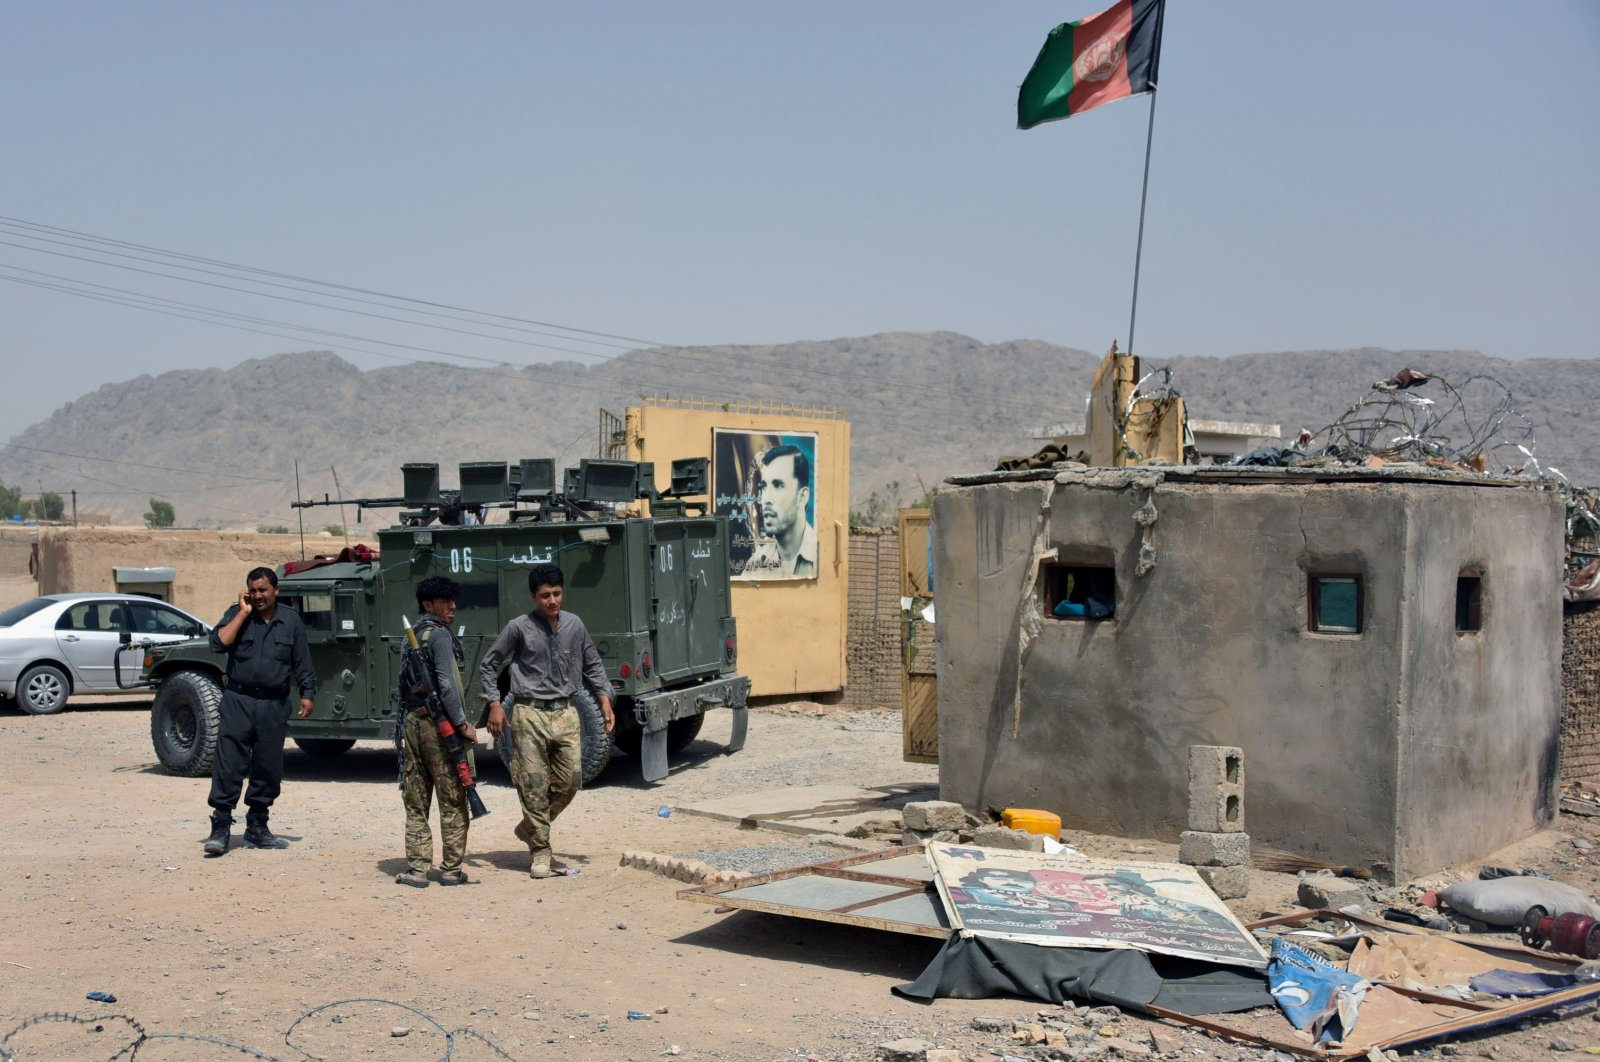 Afghan security forces inspect the site of a car bomb attack in Kandahar province, Afghanistan, July 6, 2021. (Reuters Photo)